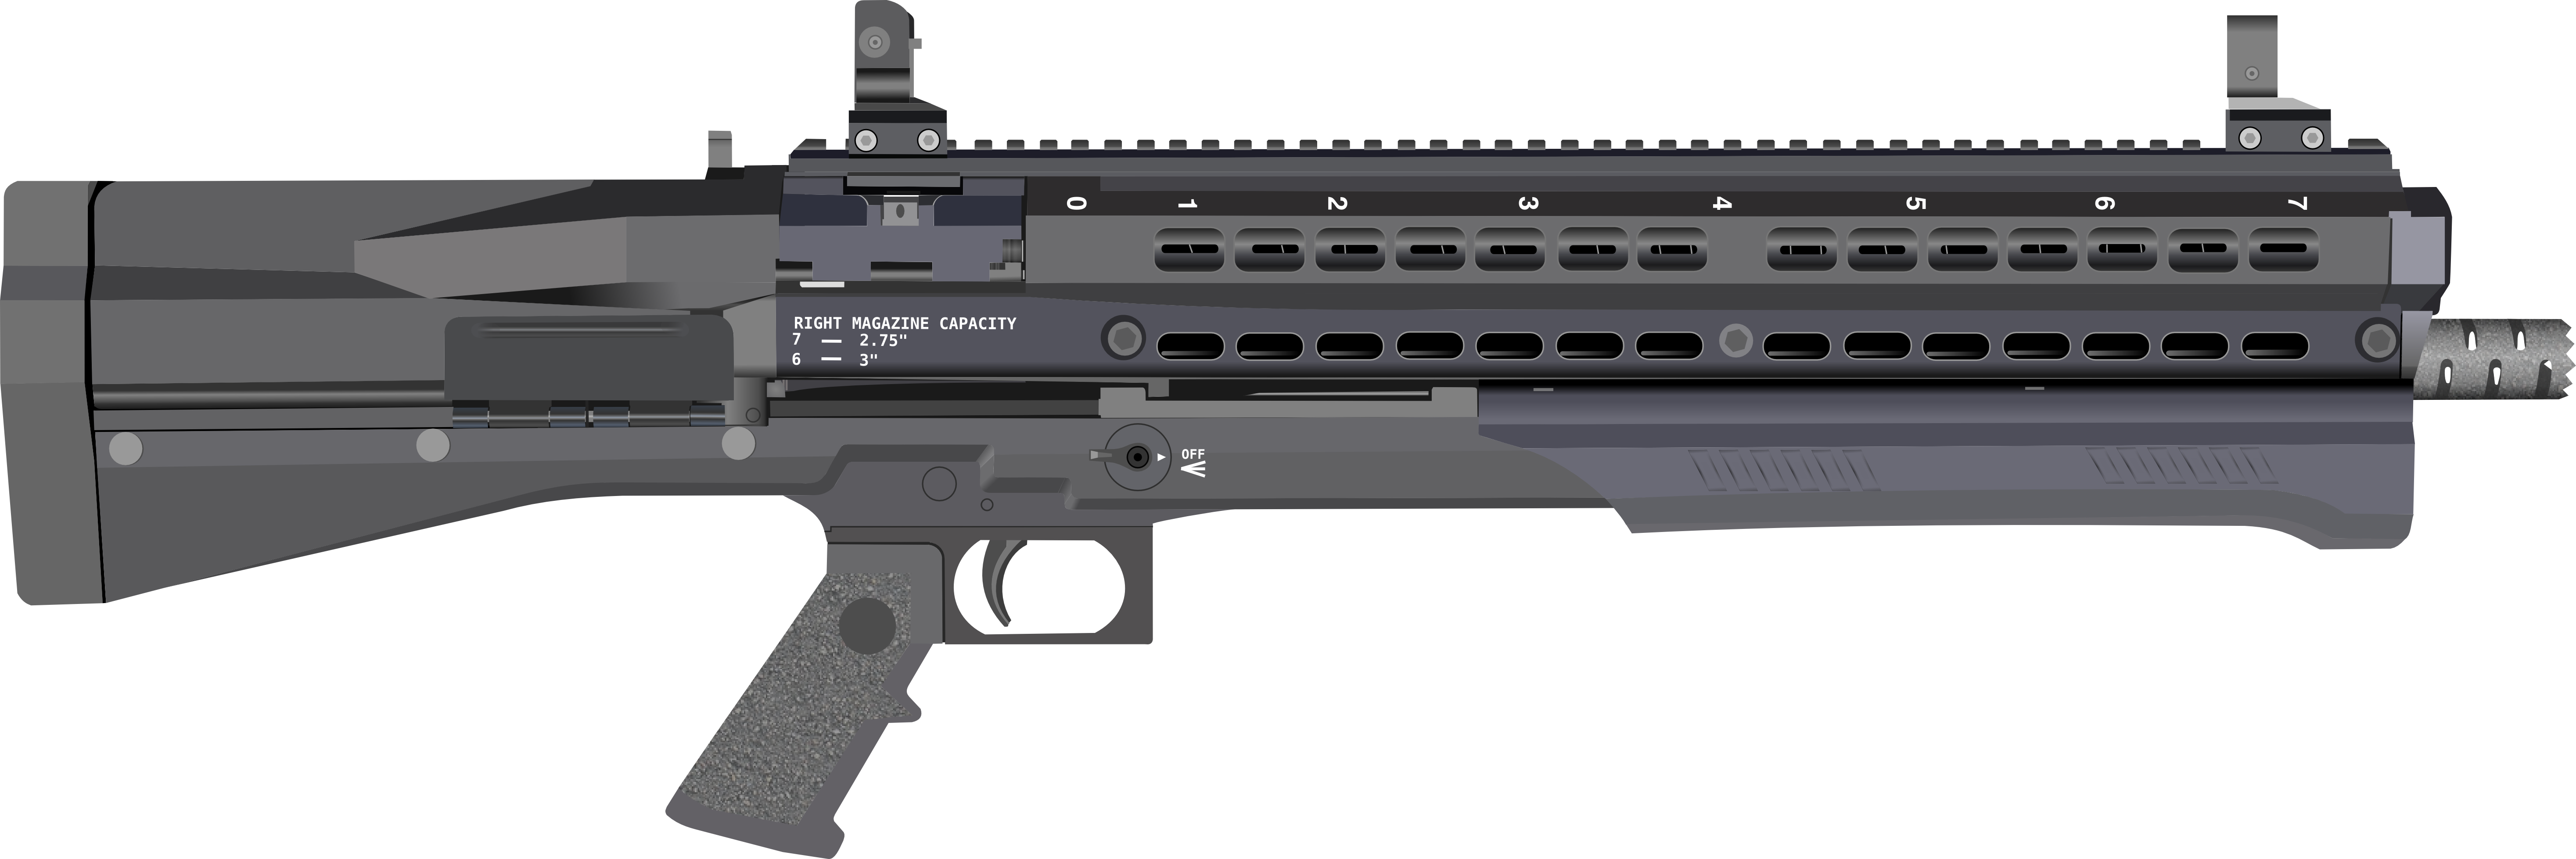 banner black and white download Looking to buy a. Vector cp1 vektor pistol